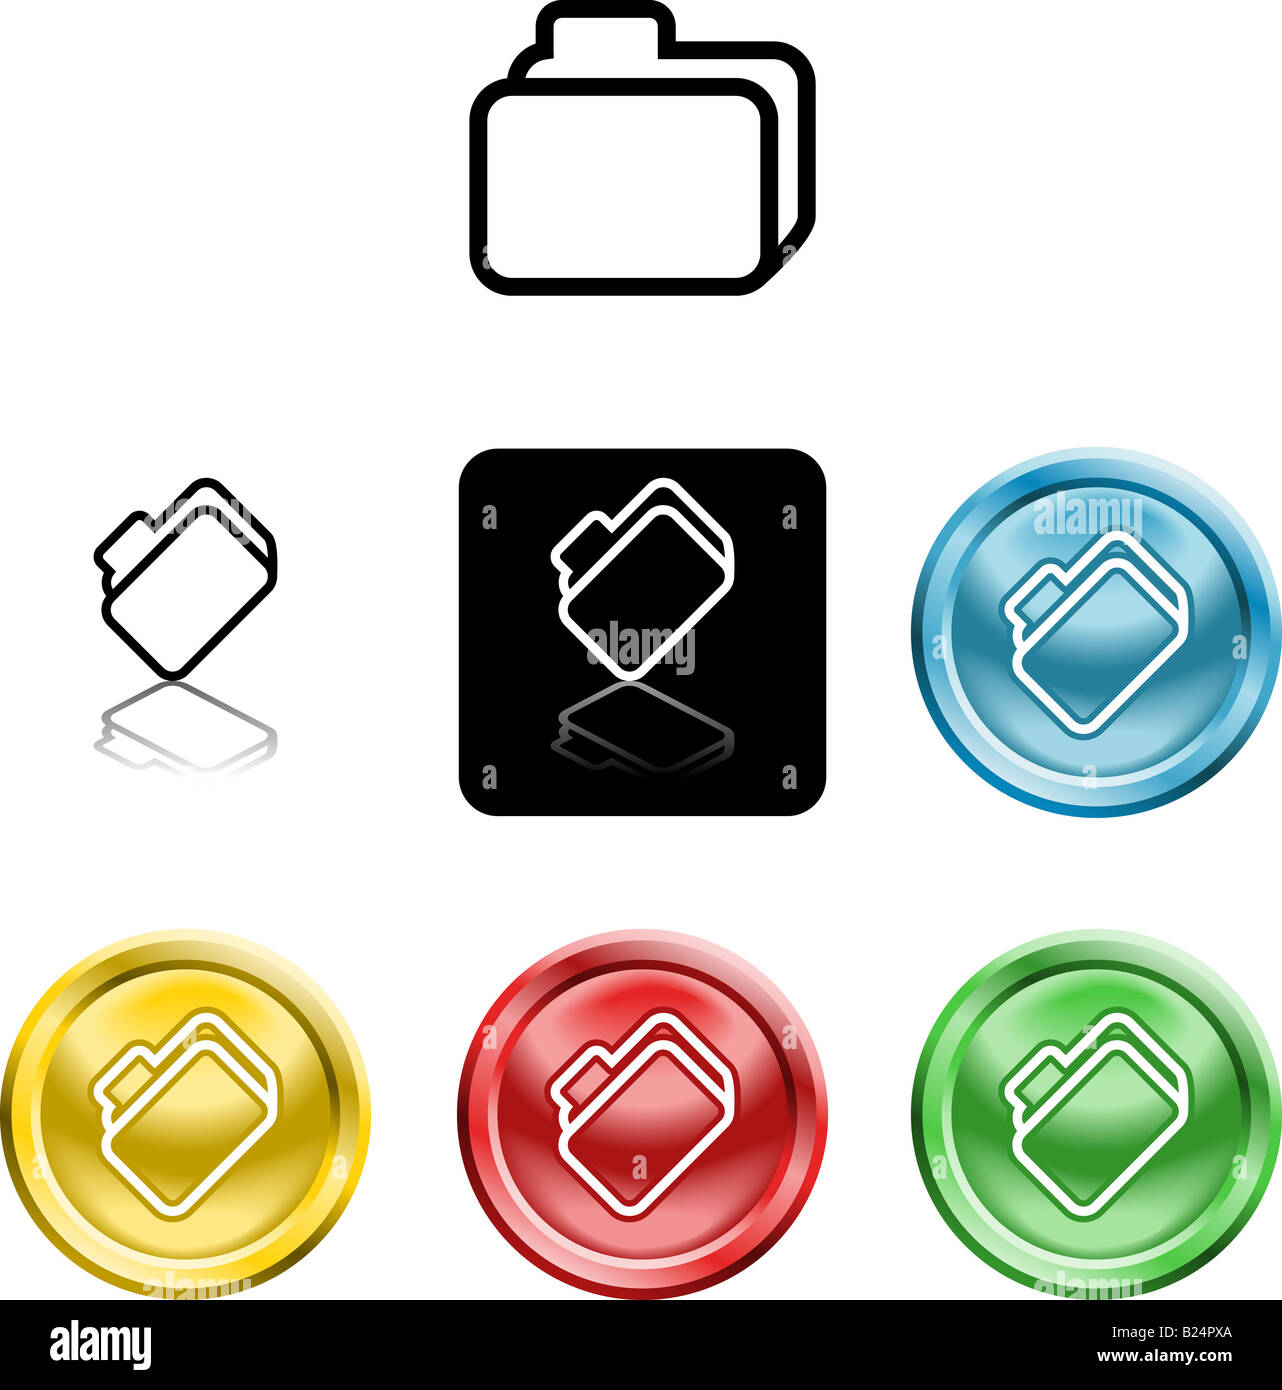 Several versions of an icon symbol of a stylised file folder - Stock Image